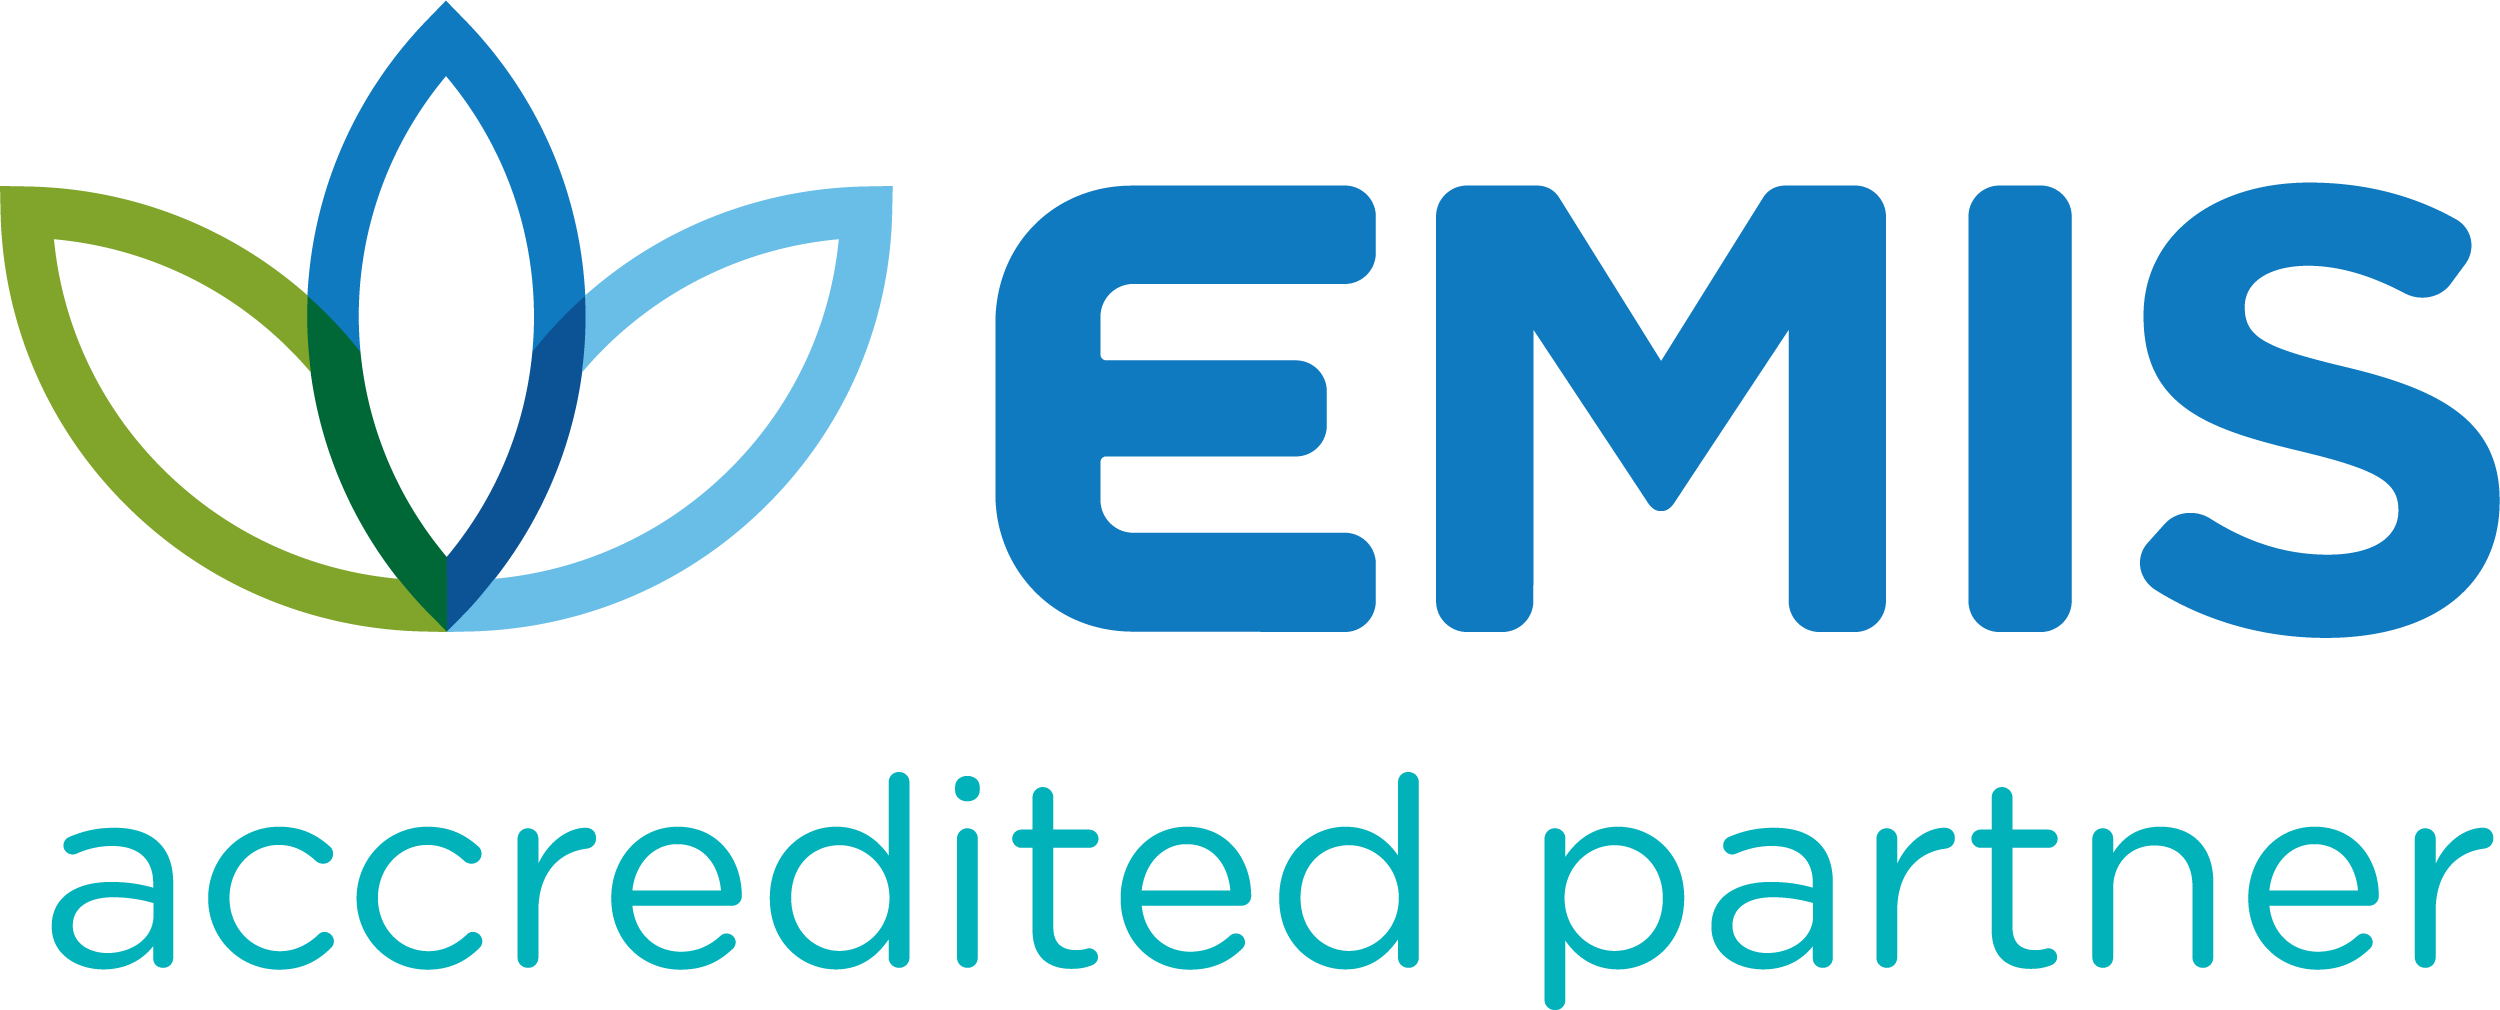 EMIS accredited partner